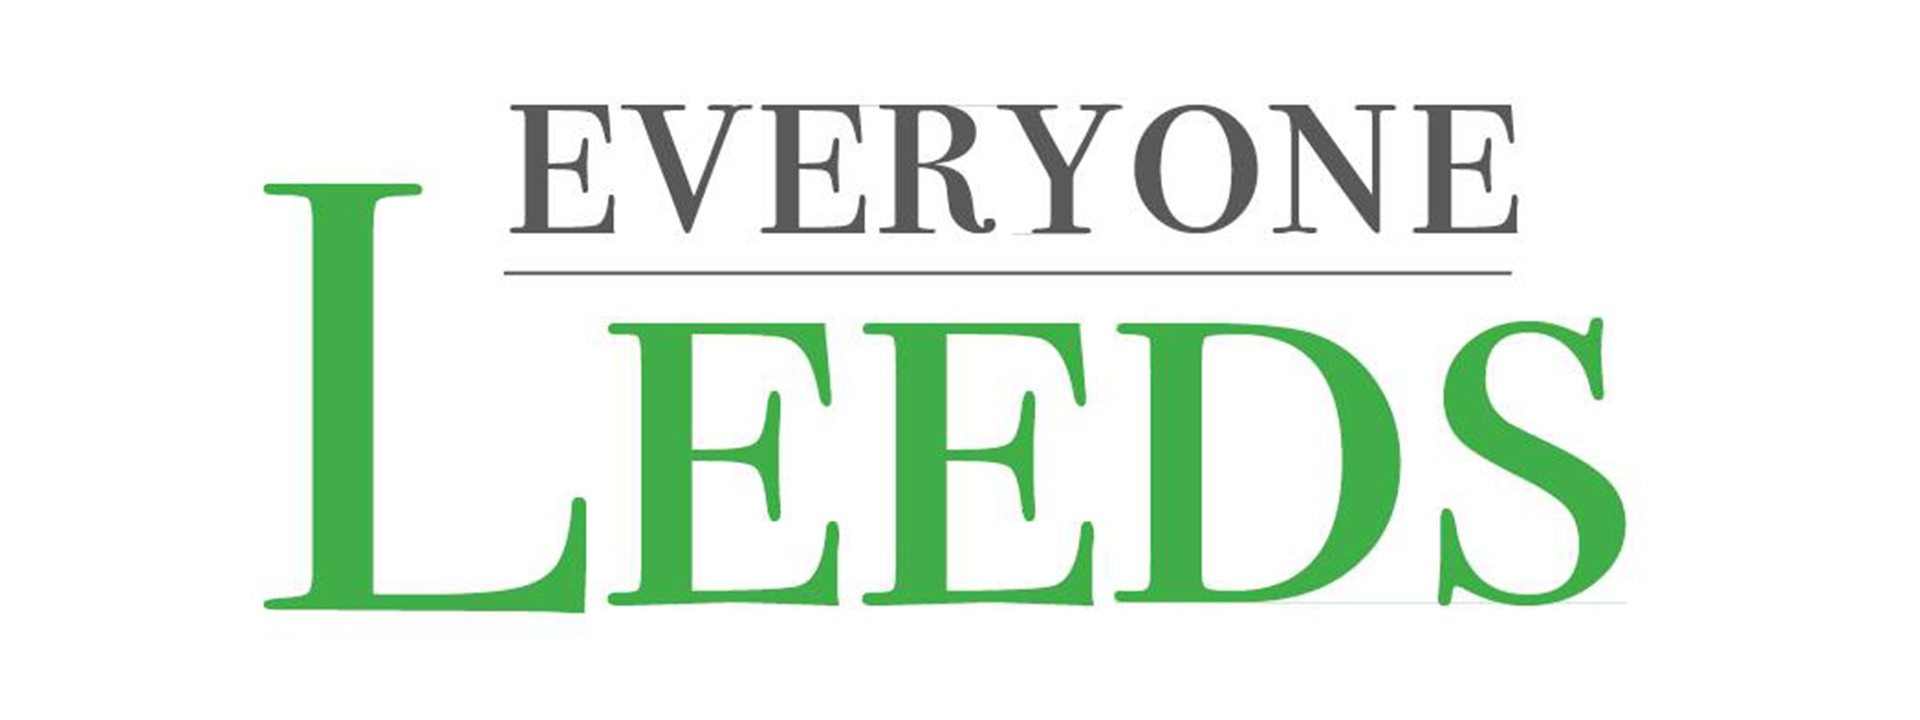 Everyone Leeds logo_1920x720